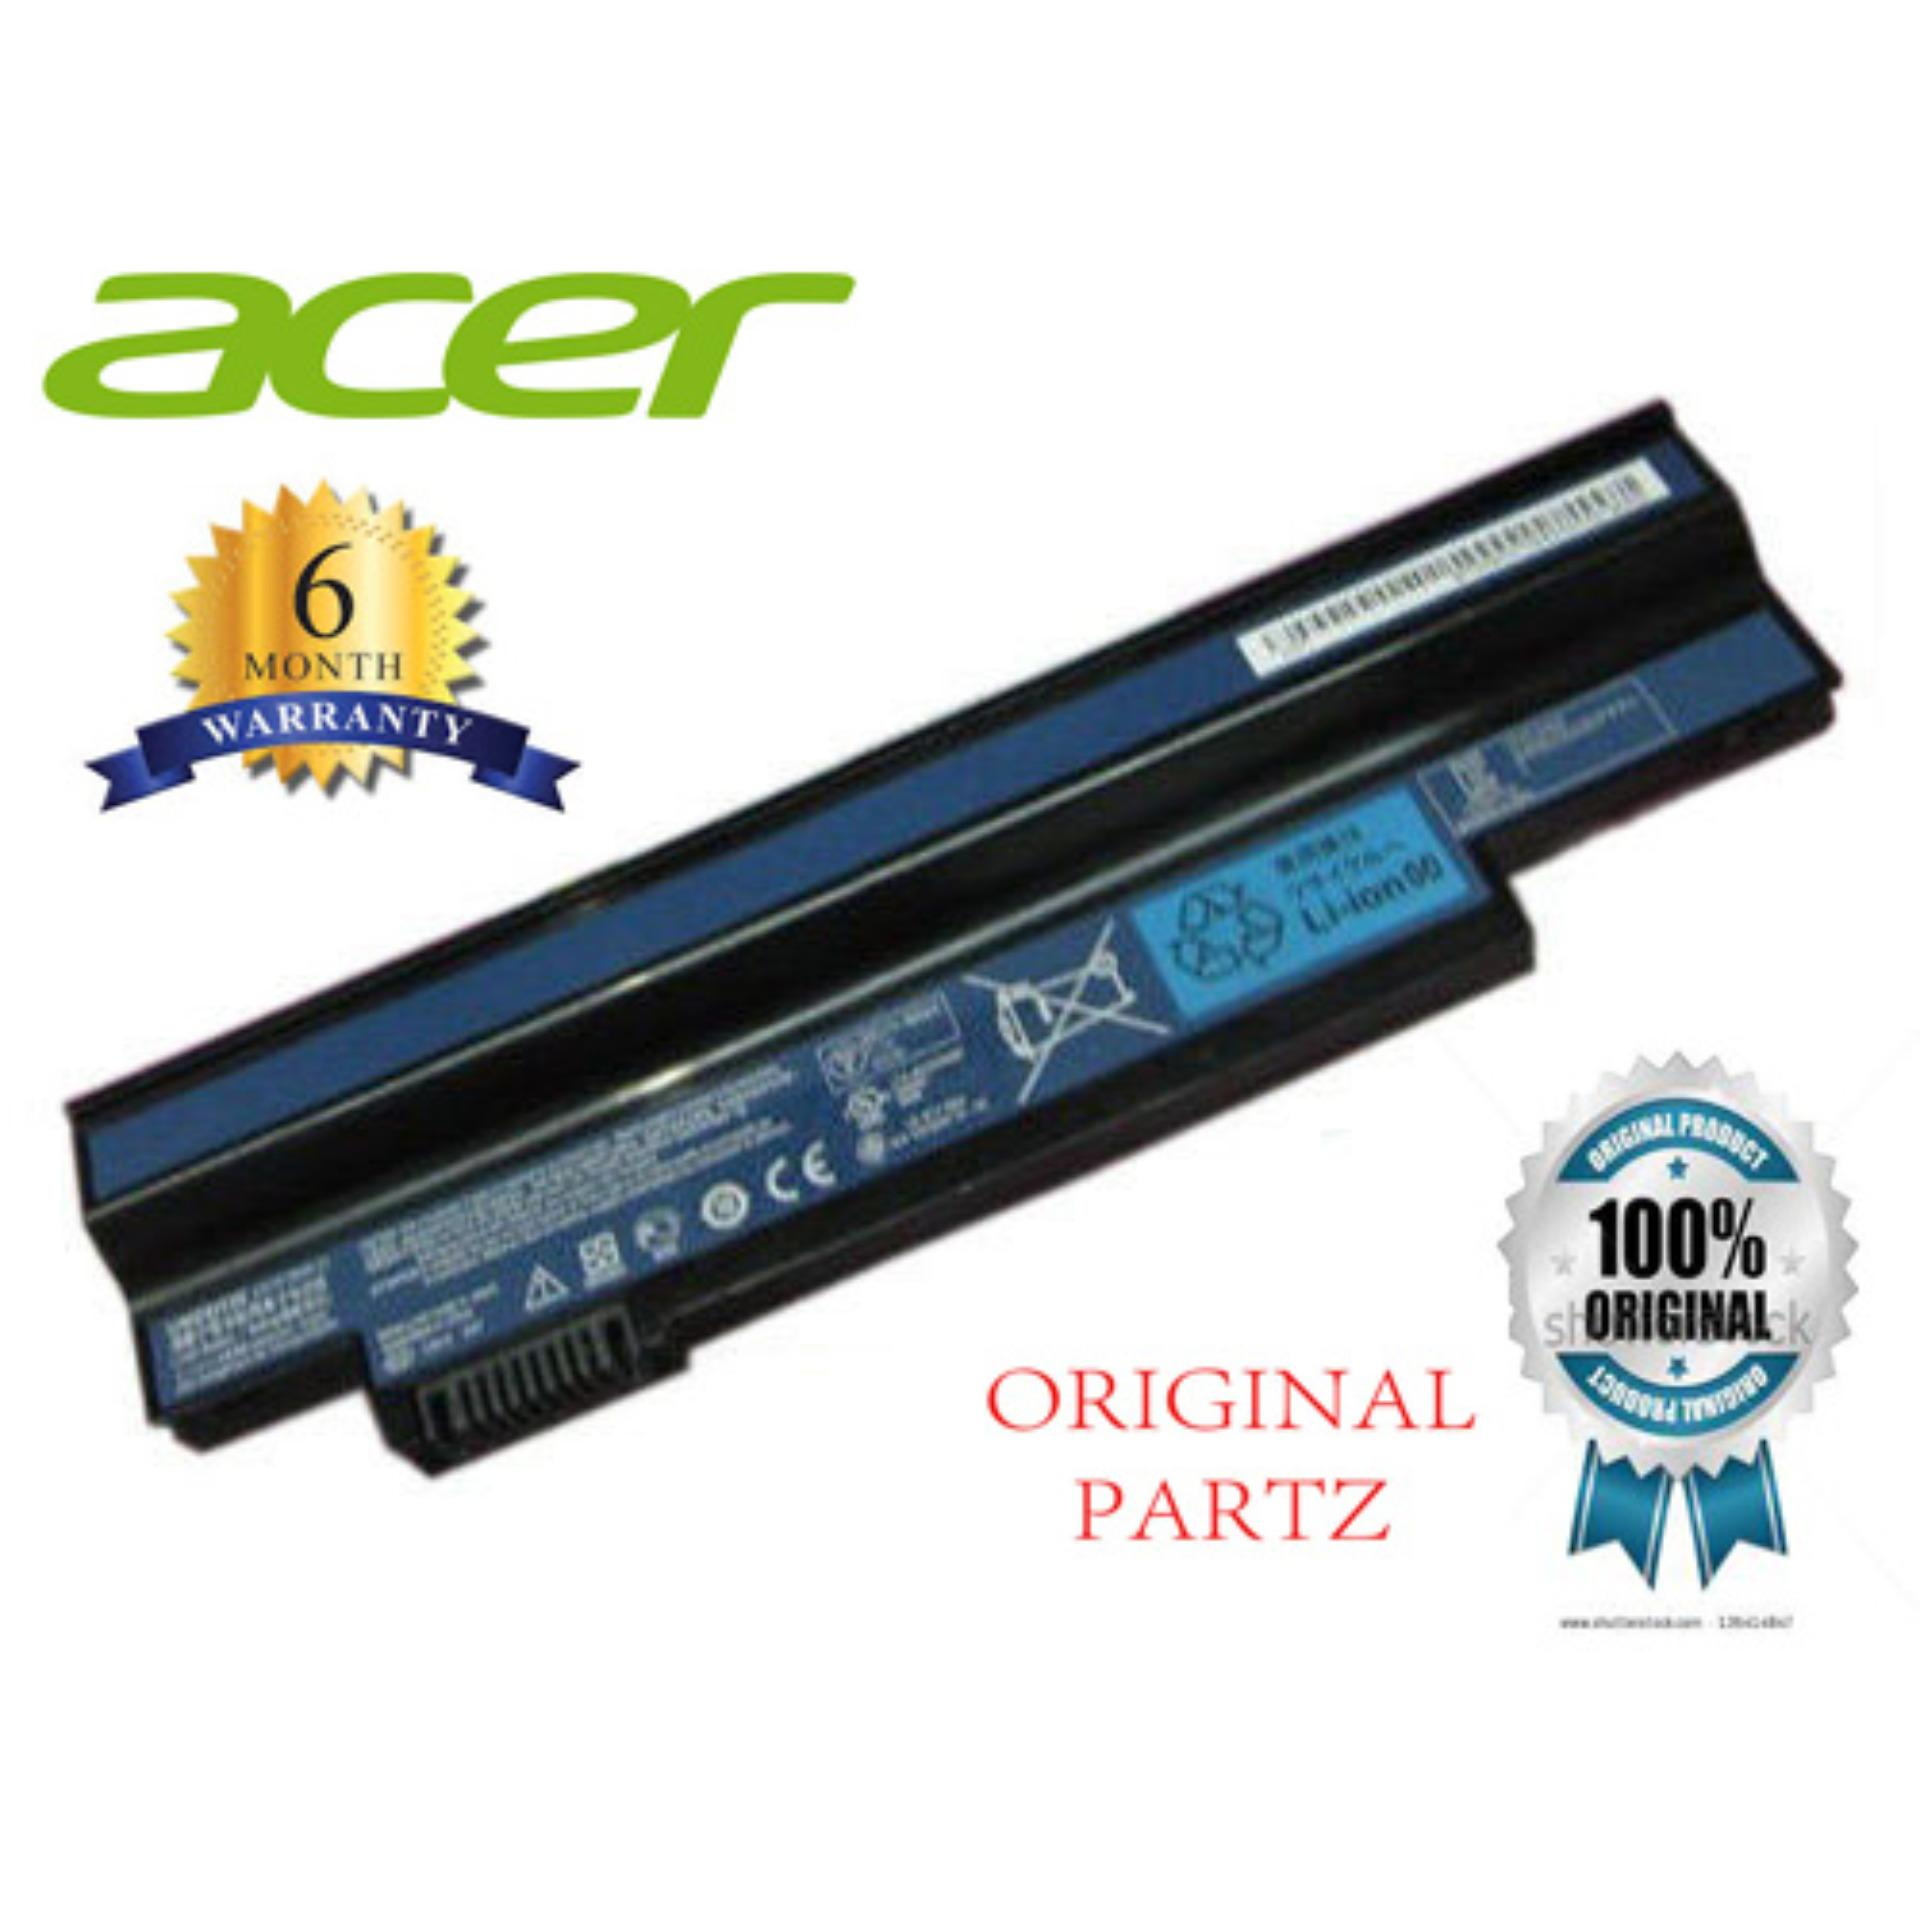 ACER Original Baterai Notebook Laptop ASpire One 532H Hitam Black